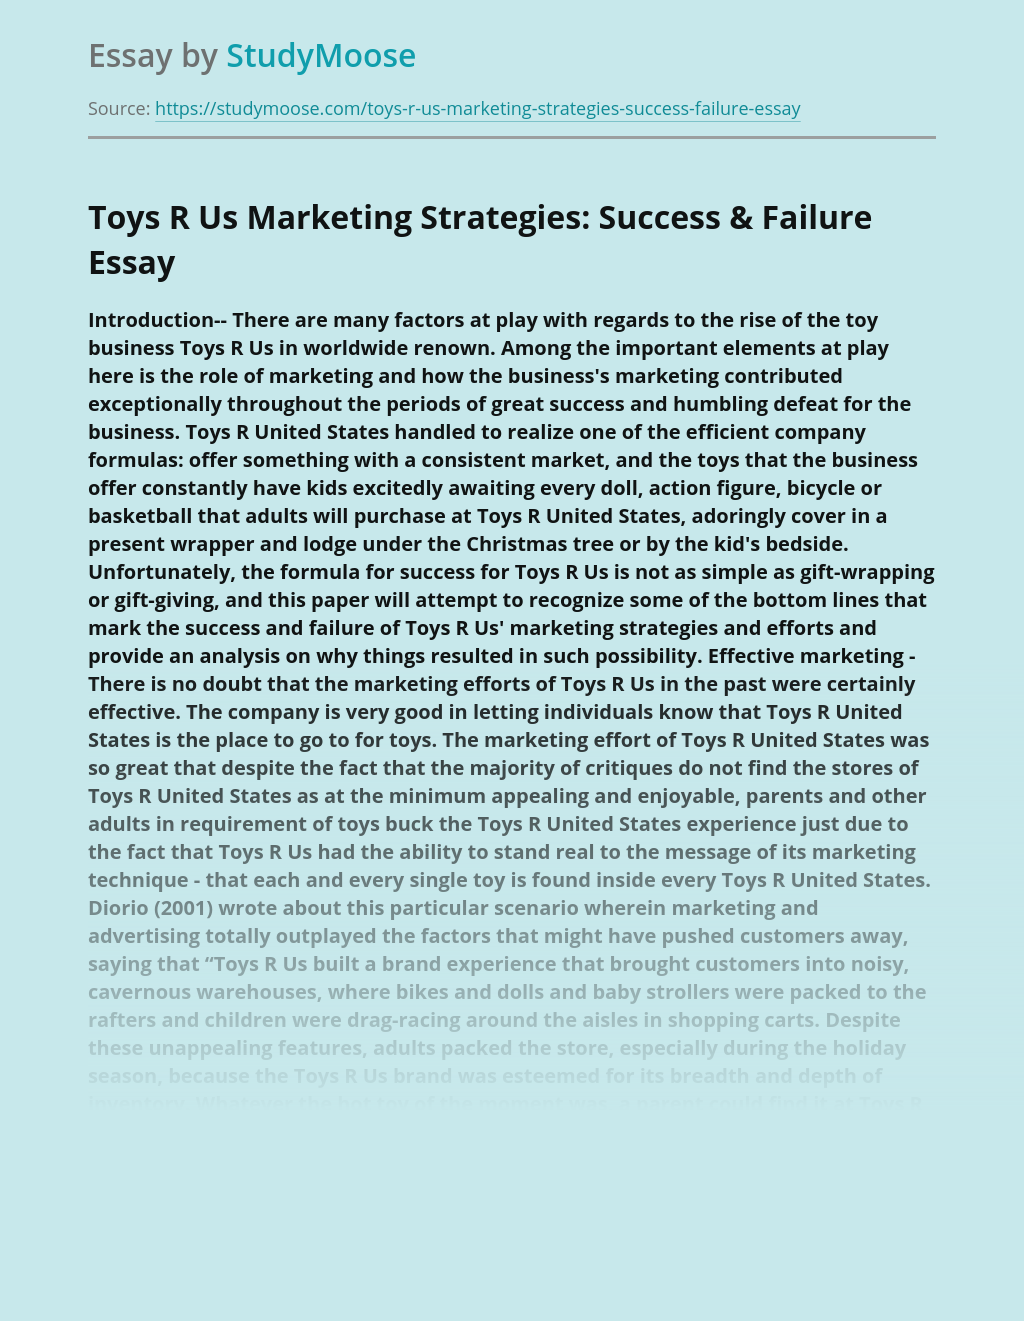 Toys R Us Marketing Strategies: Success & Failure